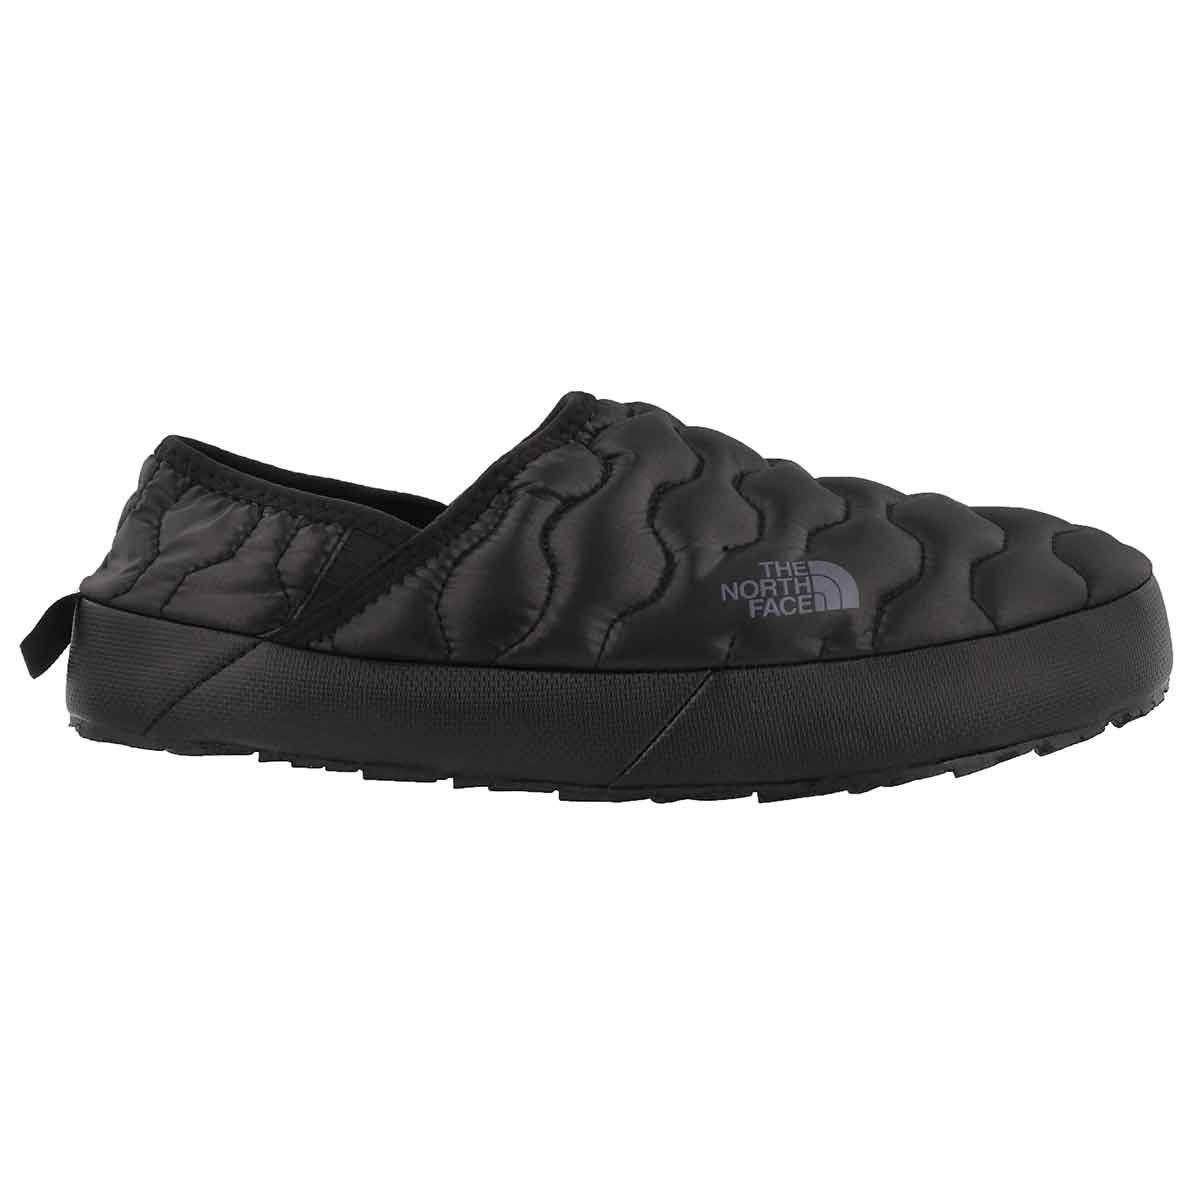 Mns ThermoBallTractionMuleIV blk slipper